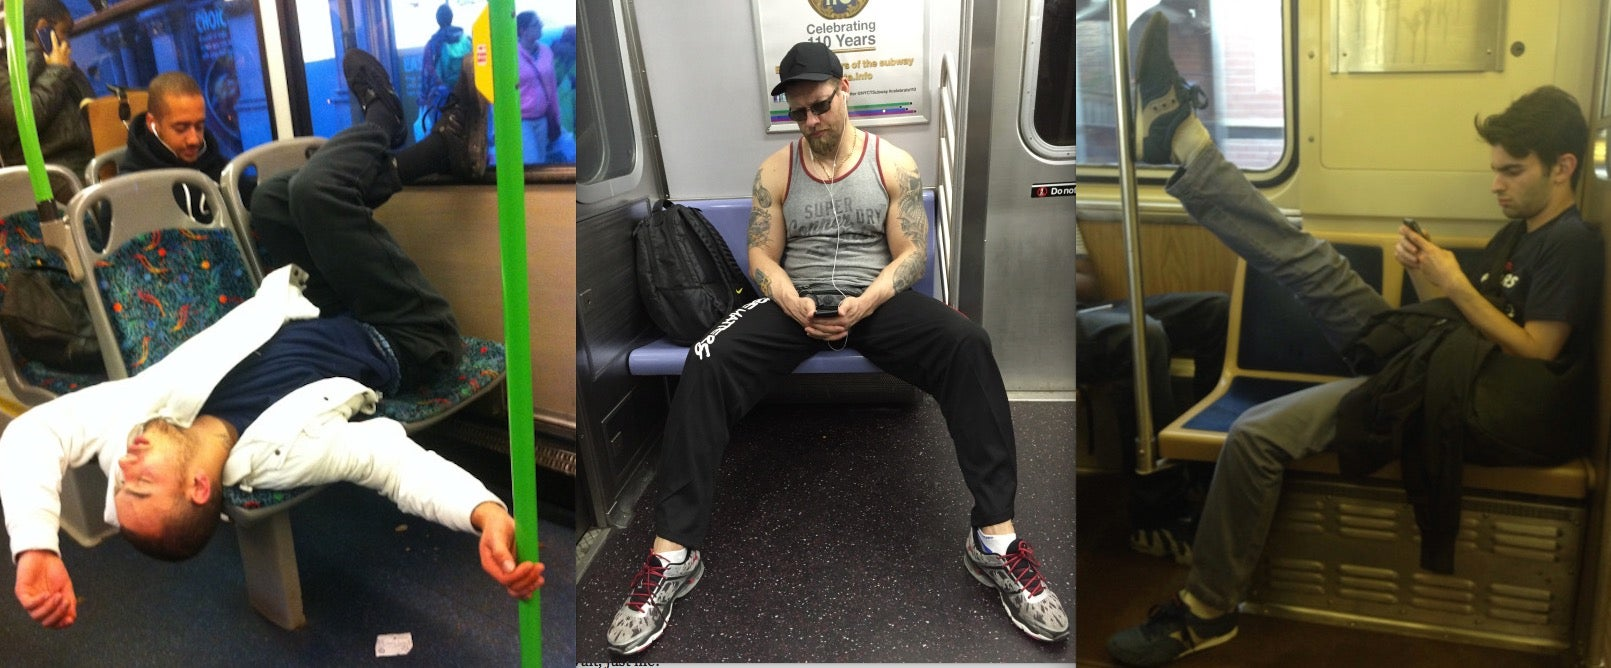 What Is the Most Obnoxious Behaviour You've Seen on Public Transit?